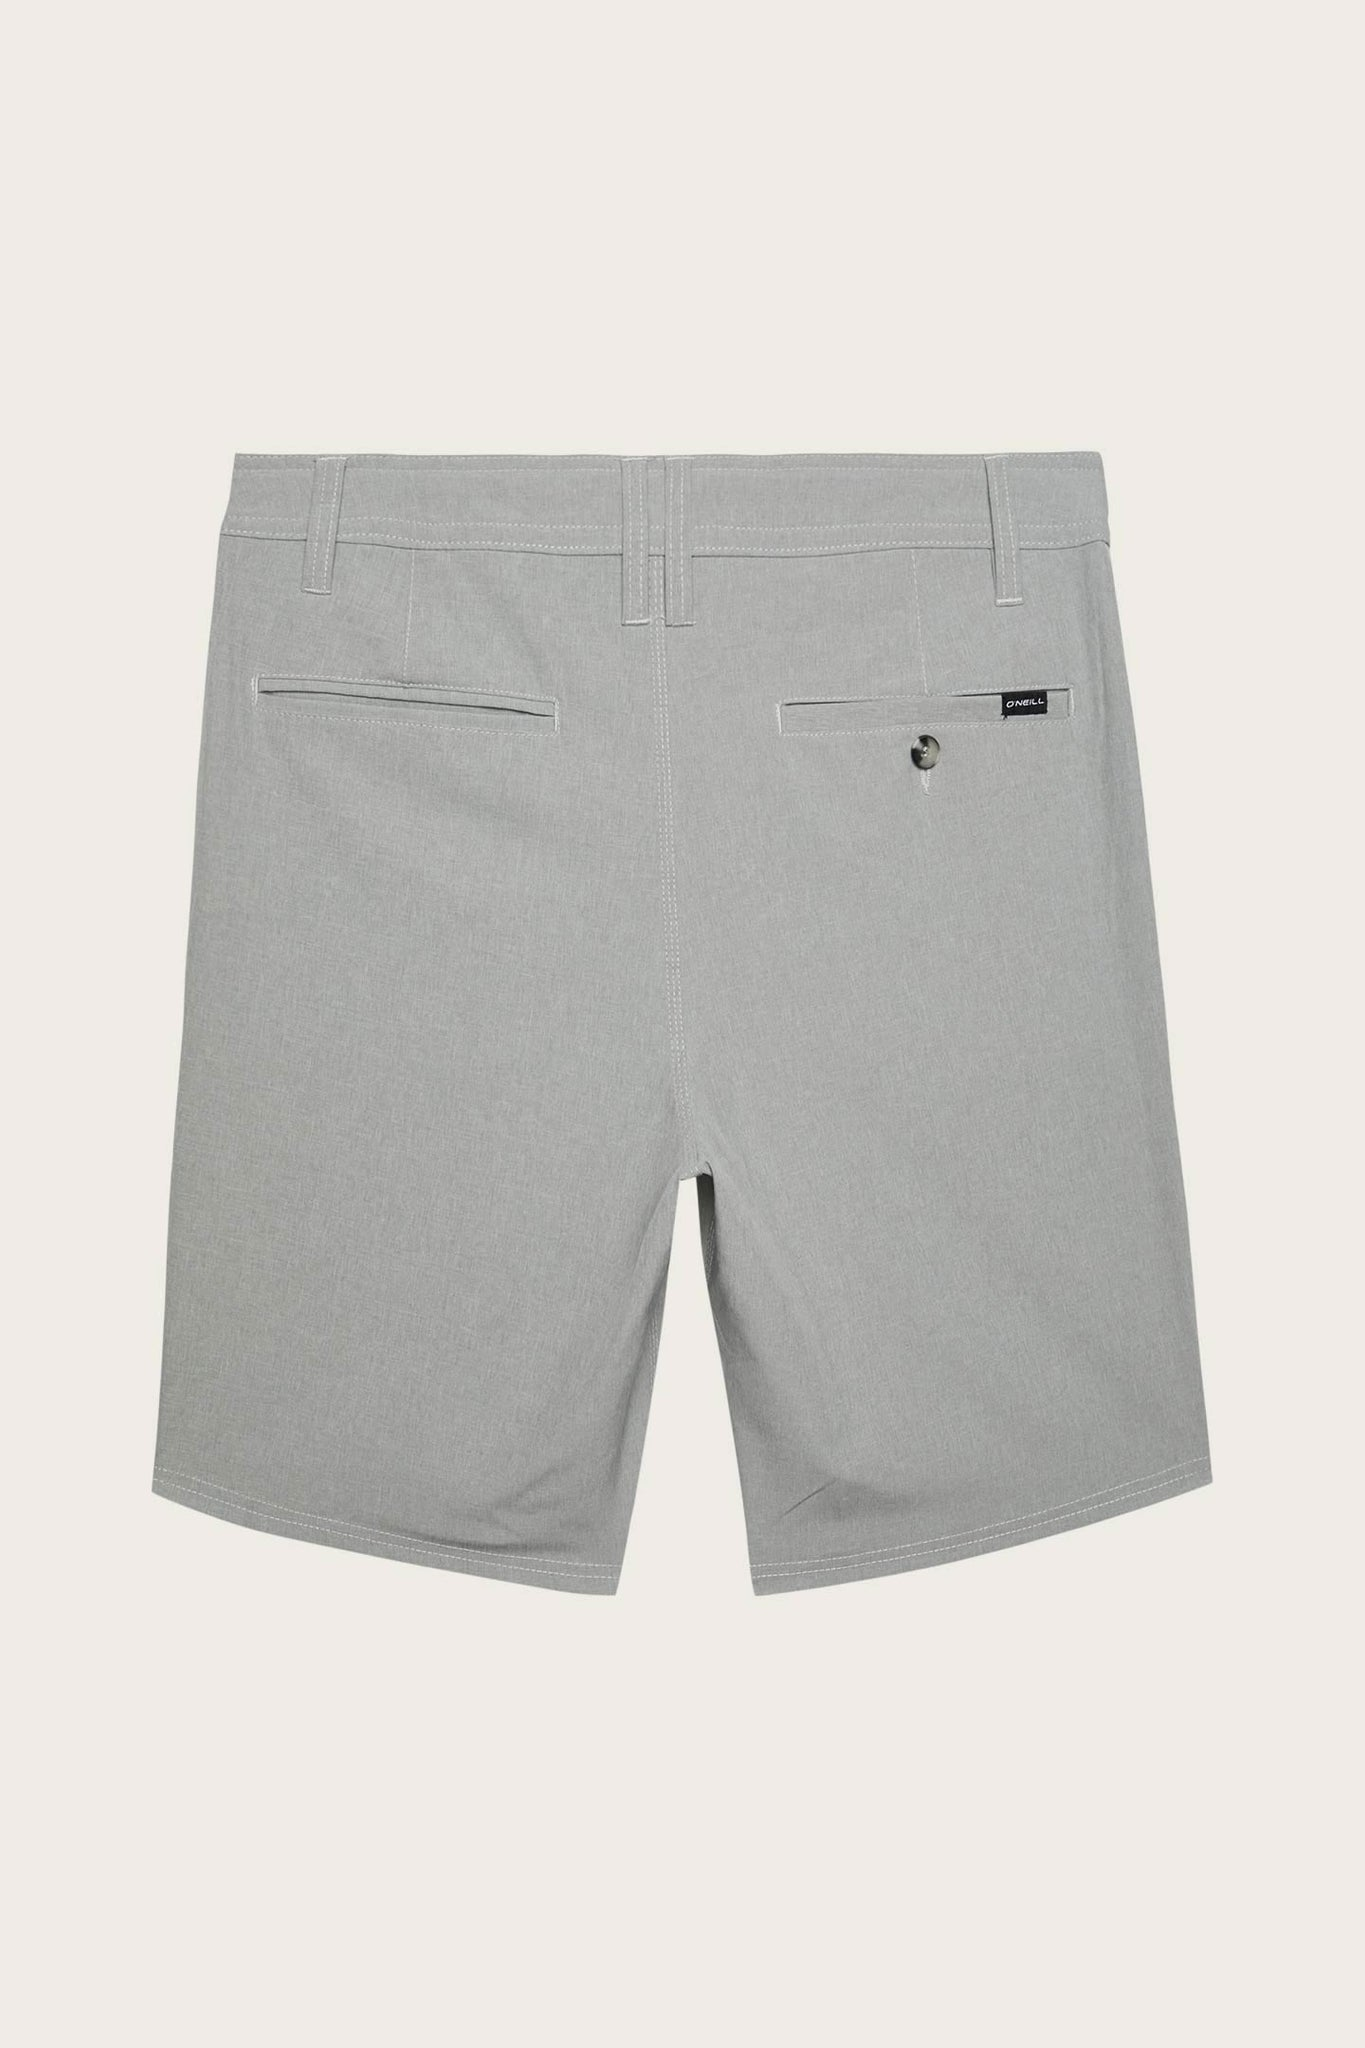 Boys Reserve Heather Hybrid Shorts - Light Grey | O'Neill